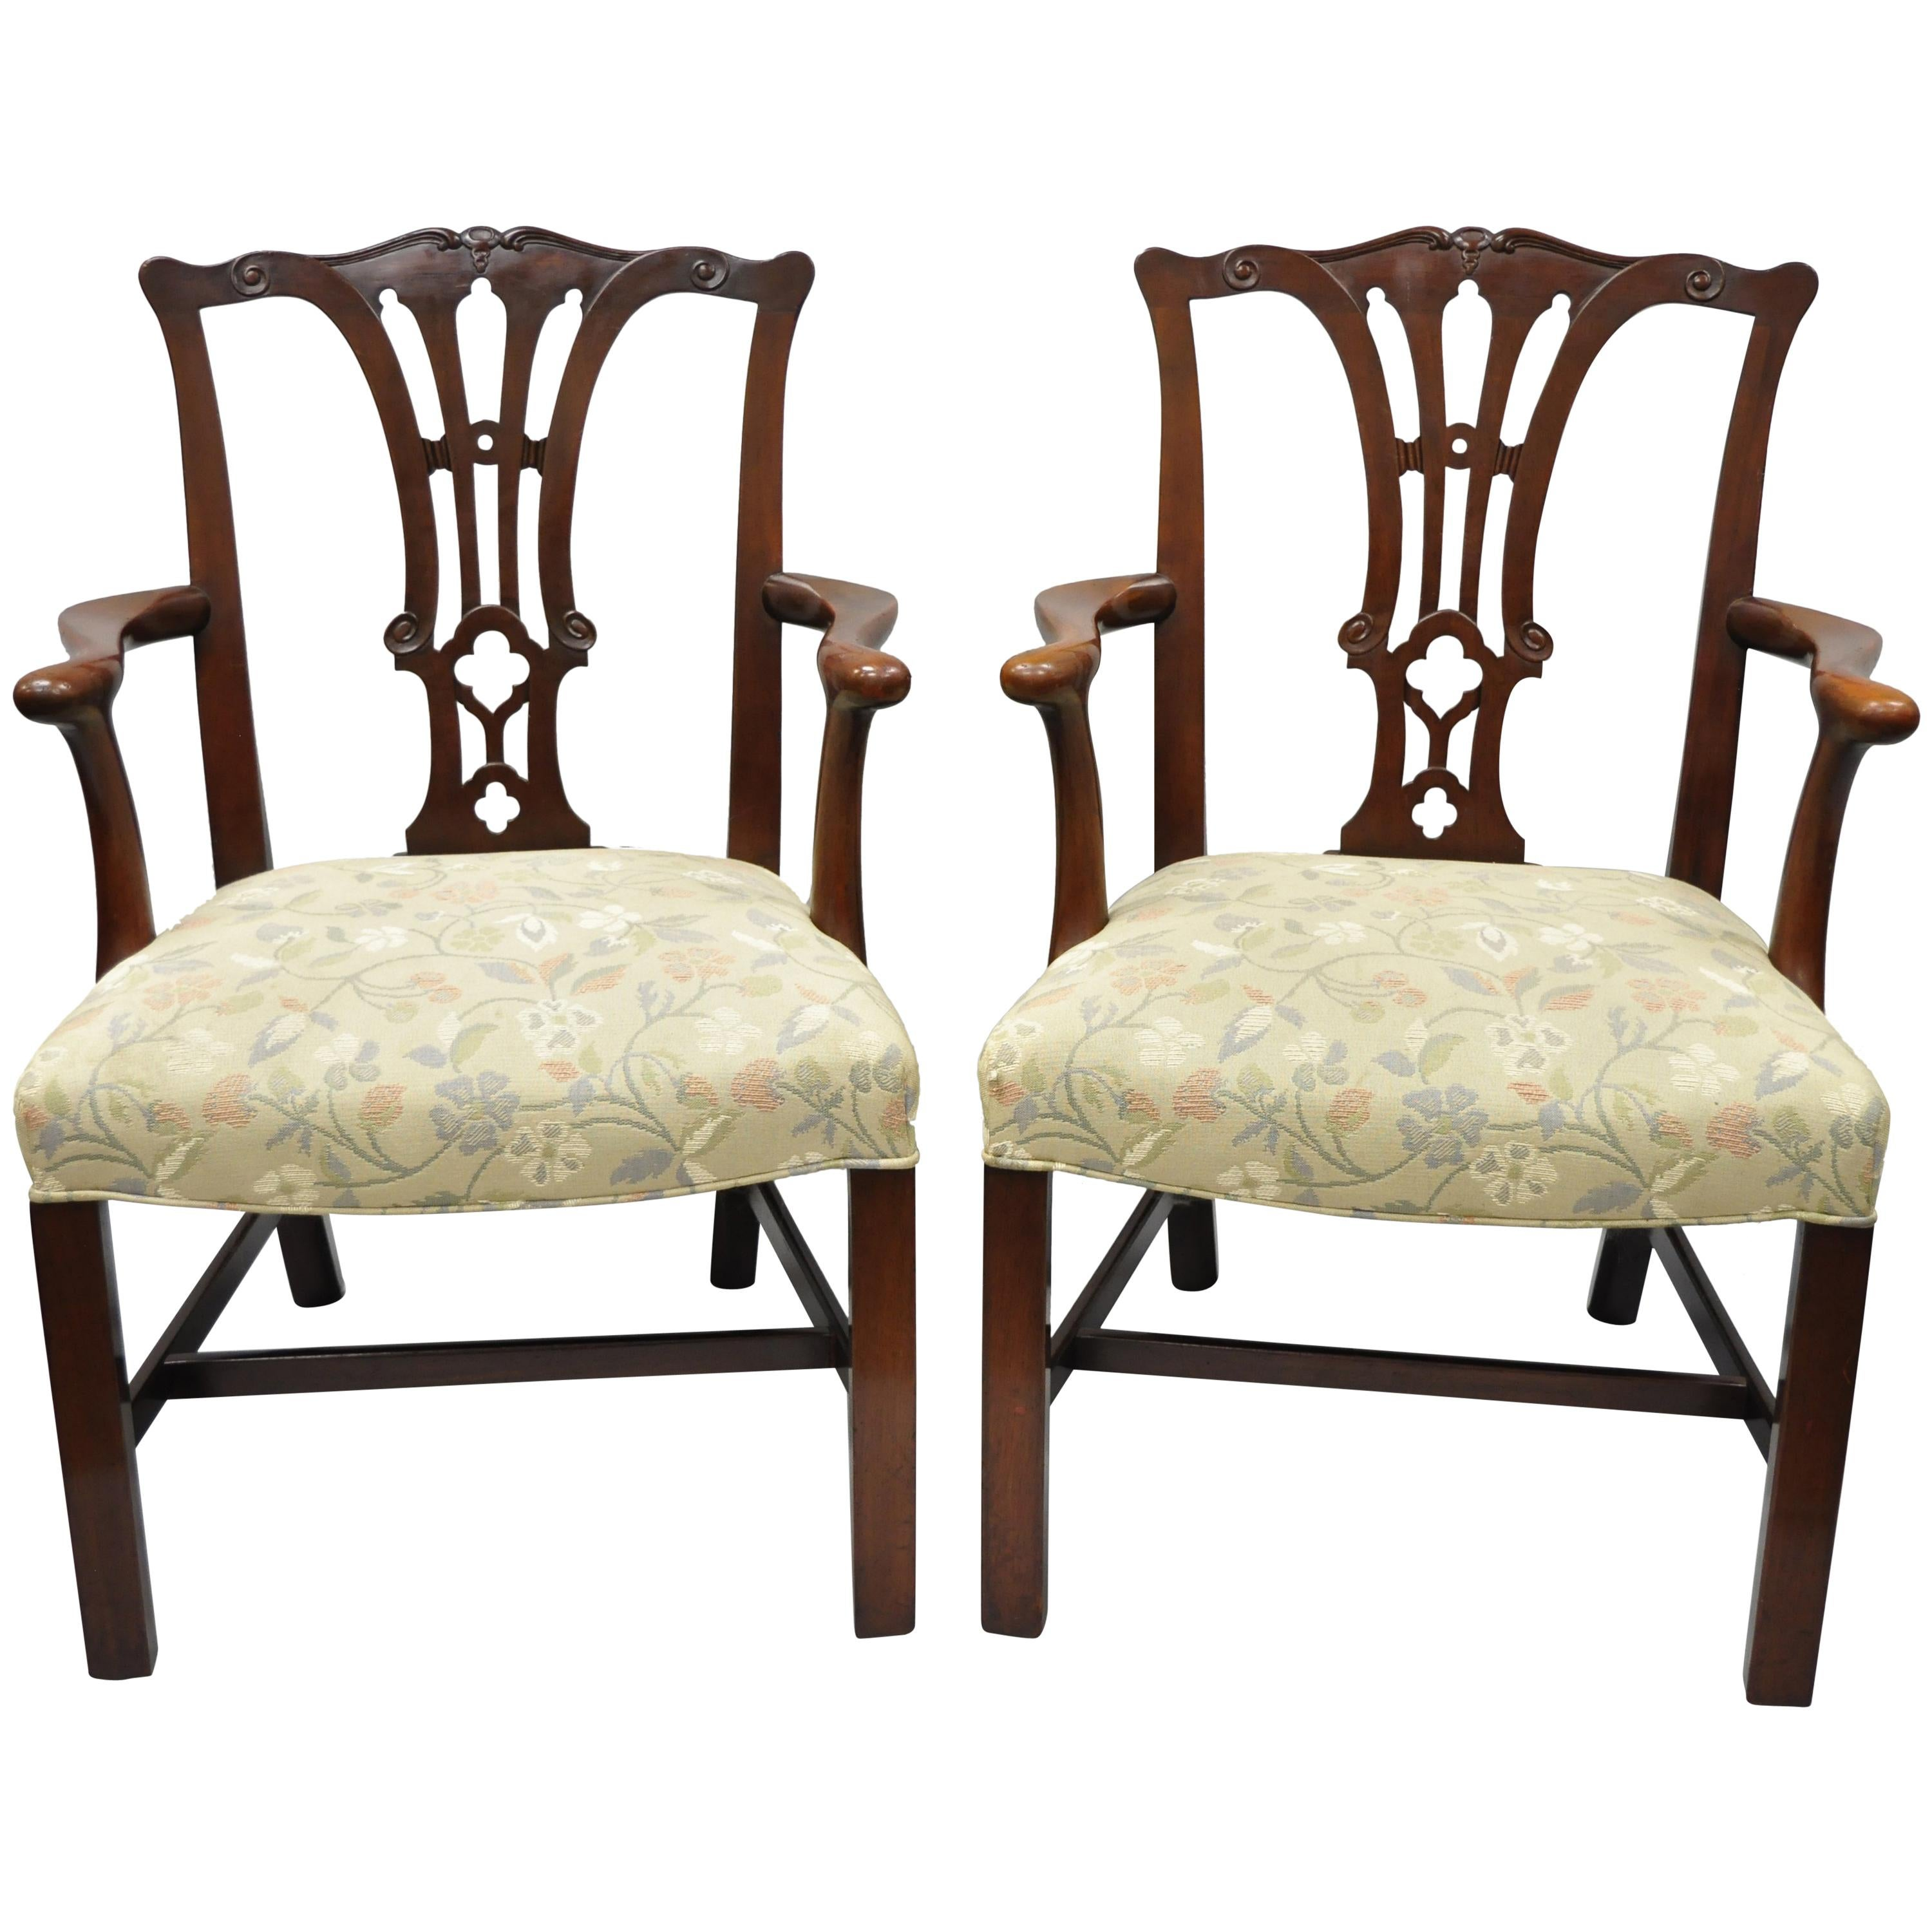 chippendale dining chair tied to room chairs 100 for sale at 1stdibs pair of schmieg kotzian mahogany style armchairs